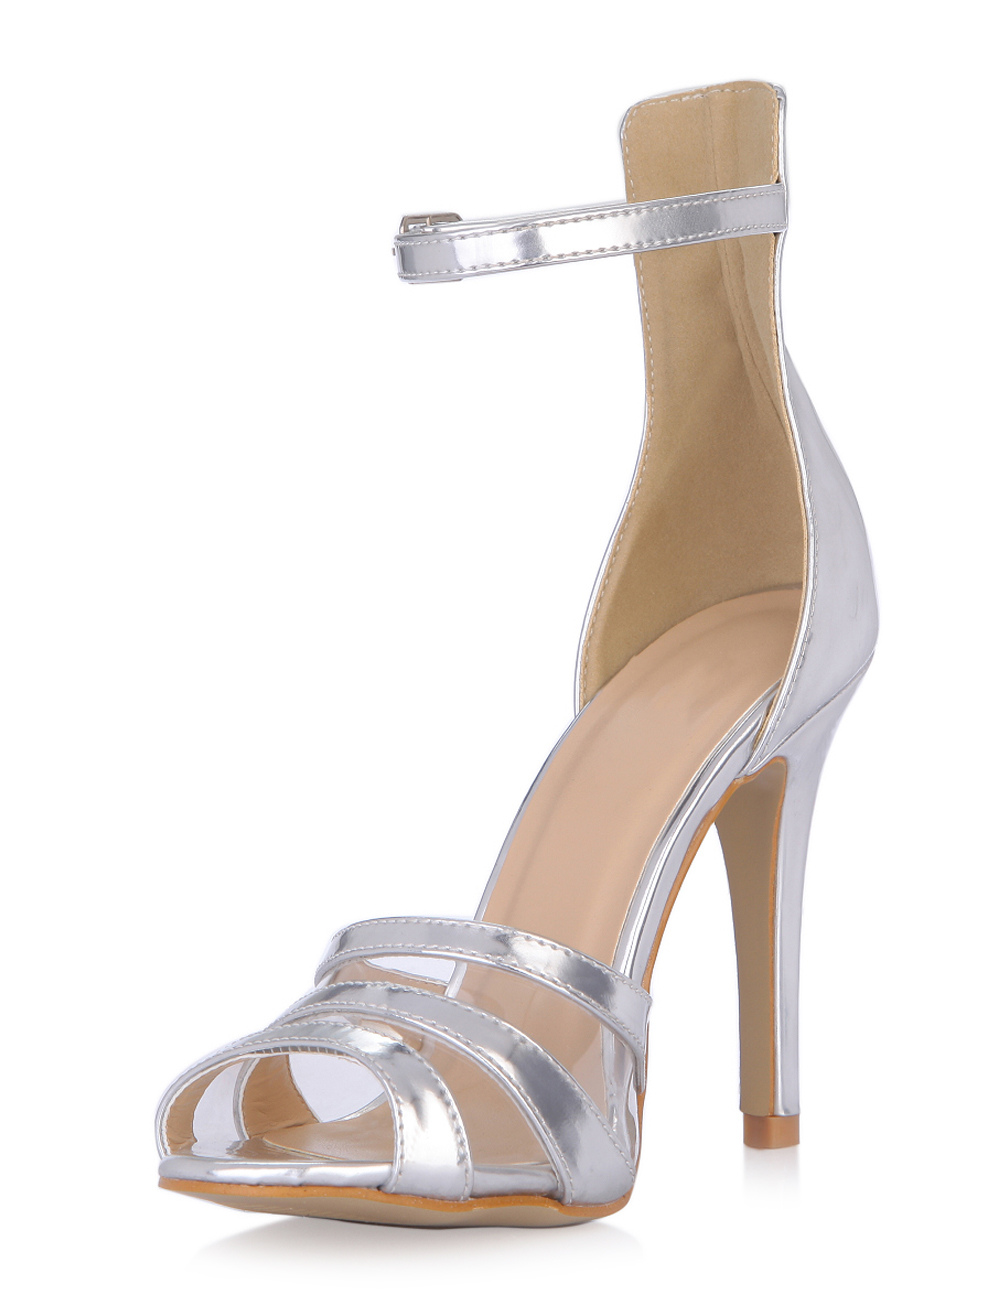 Silver Buttons Stiletto Heel Dress Sandals With Stripes